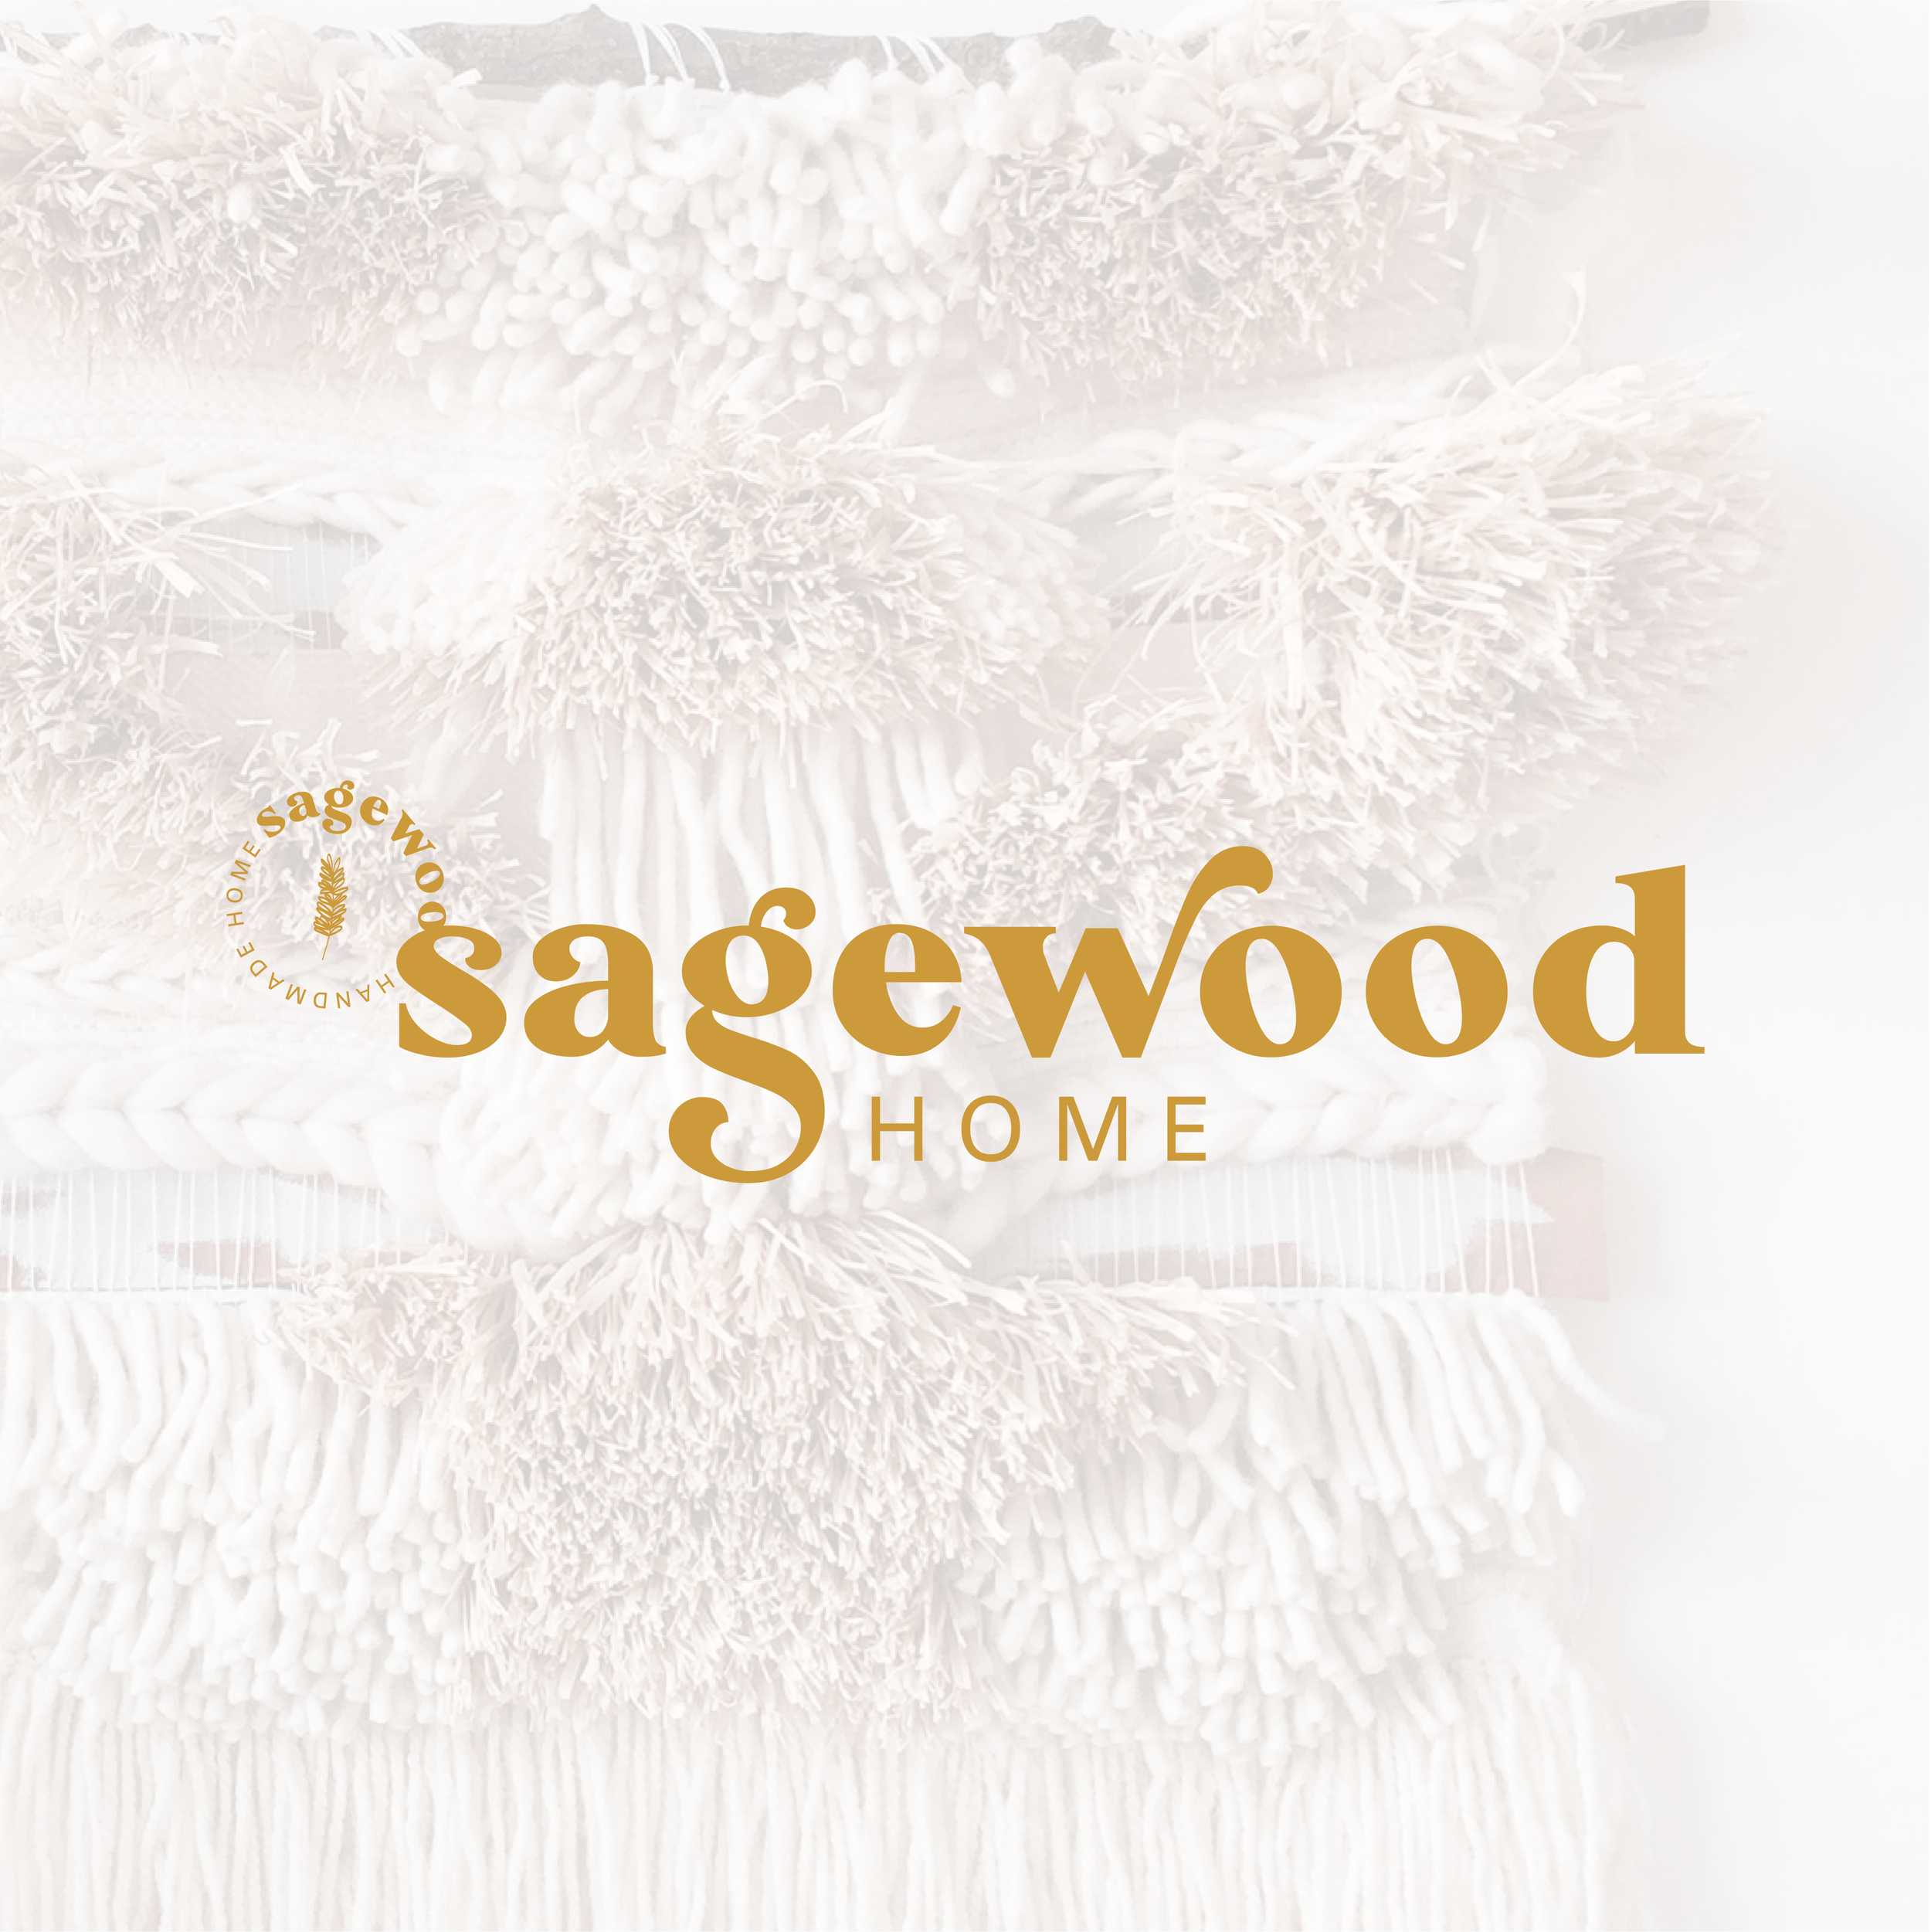 Sagewood Home   Brand Identity Design   Pre-made Brand Kit for sale in  The Foxtrot Shop